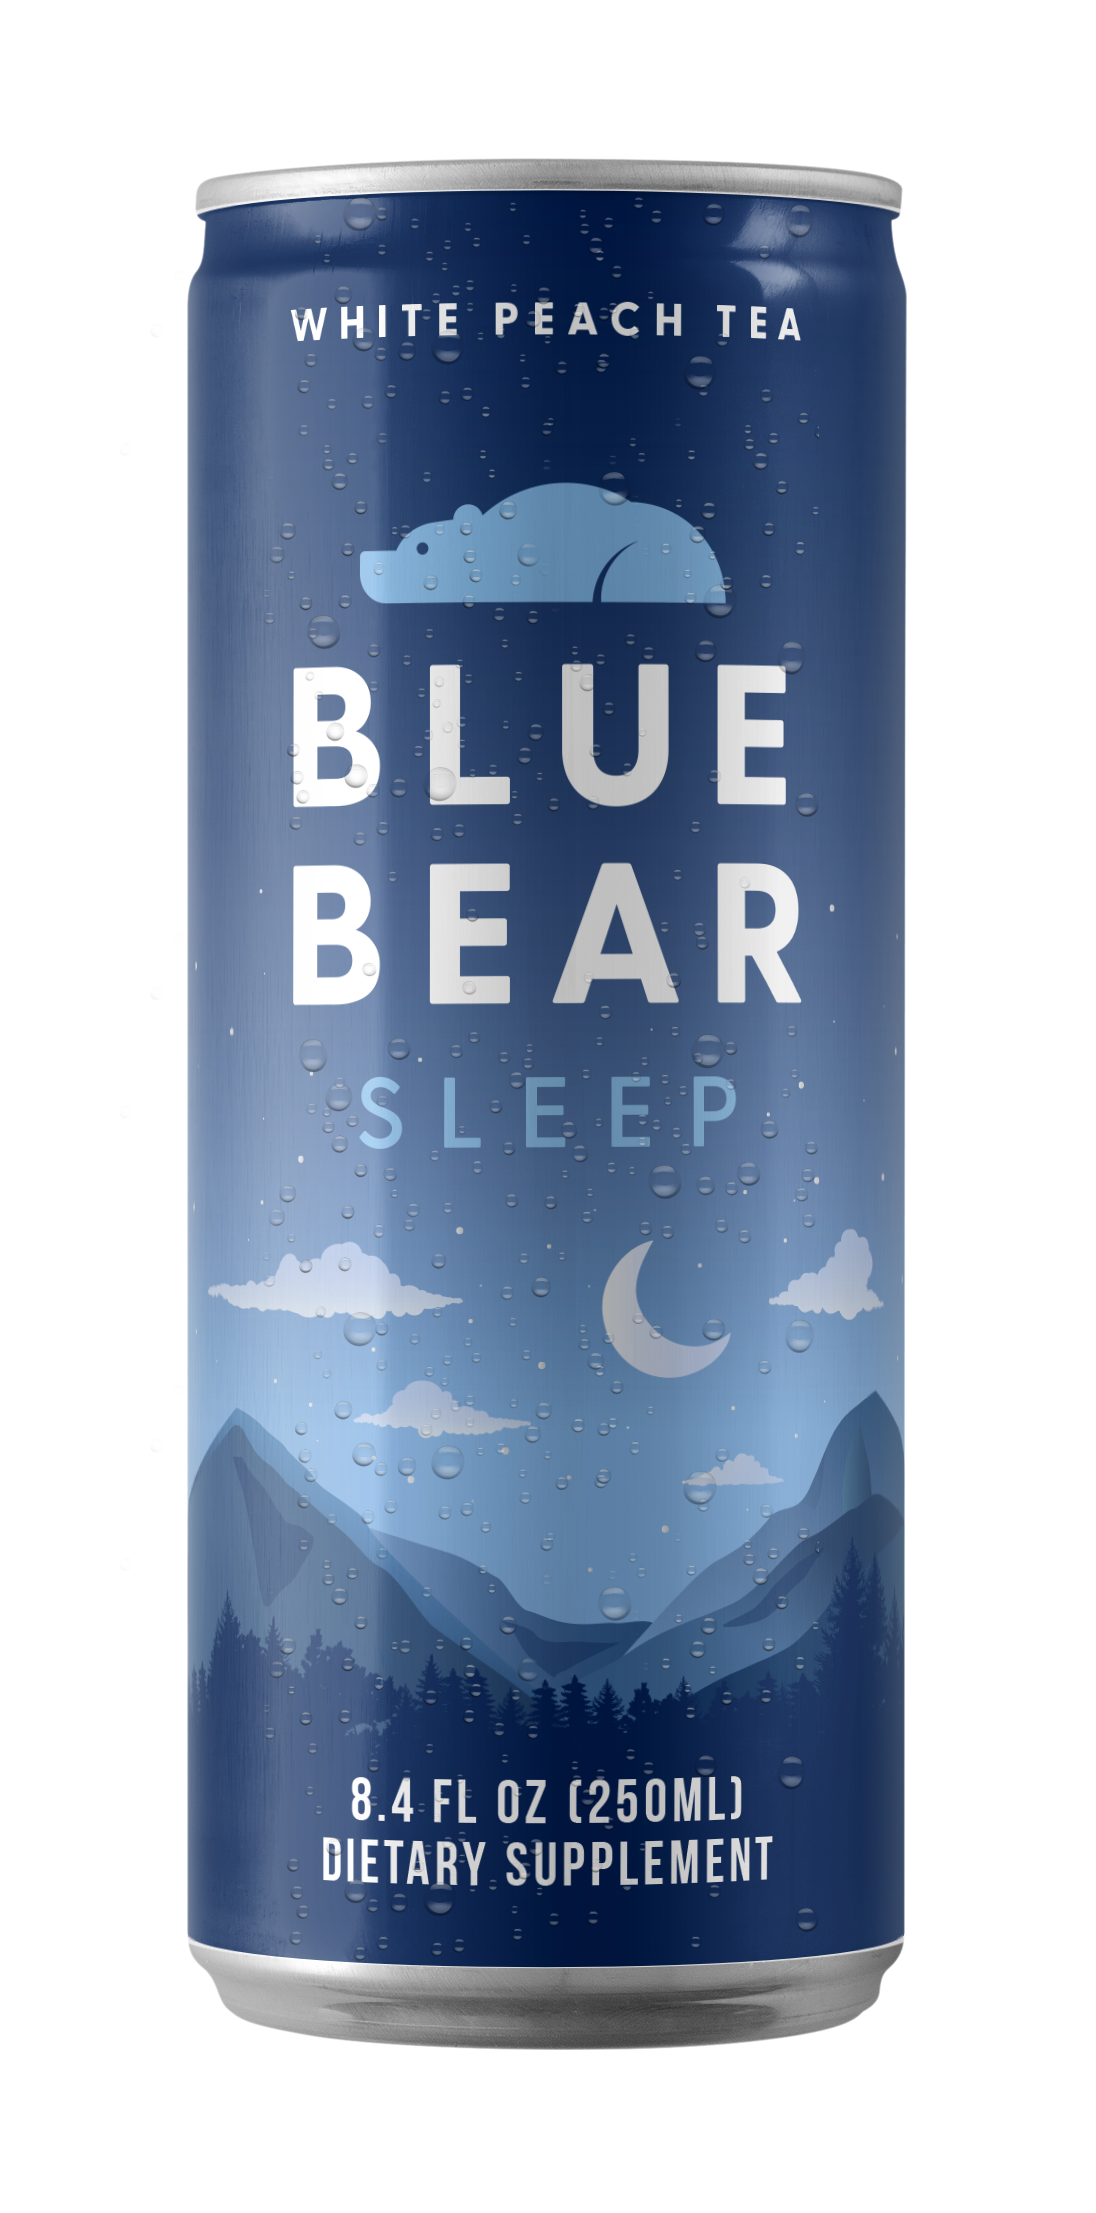 Can of Blue Bear Sleep White Peach Tea